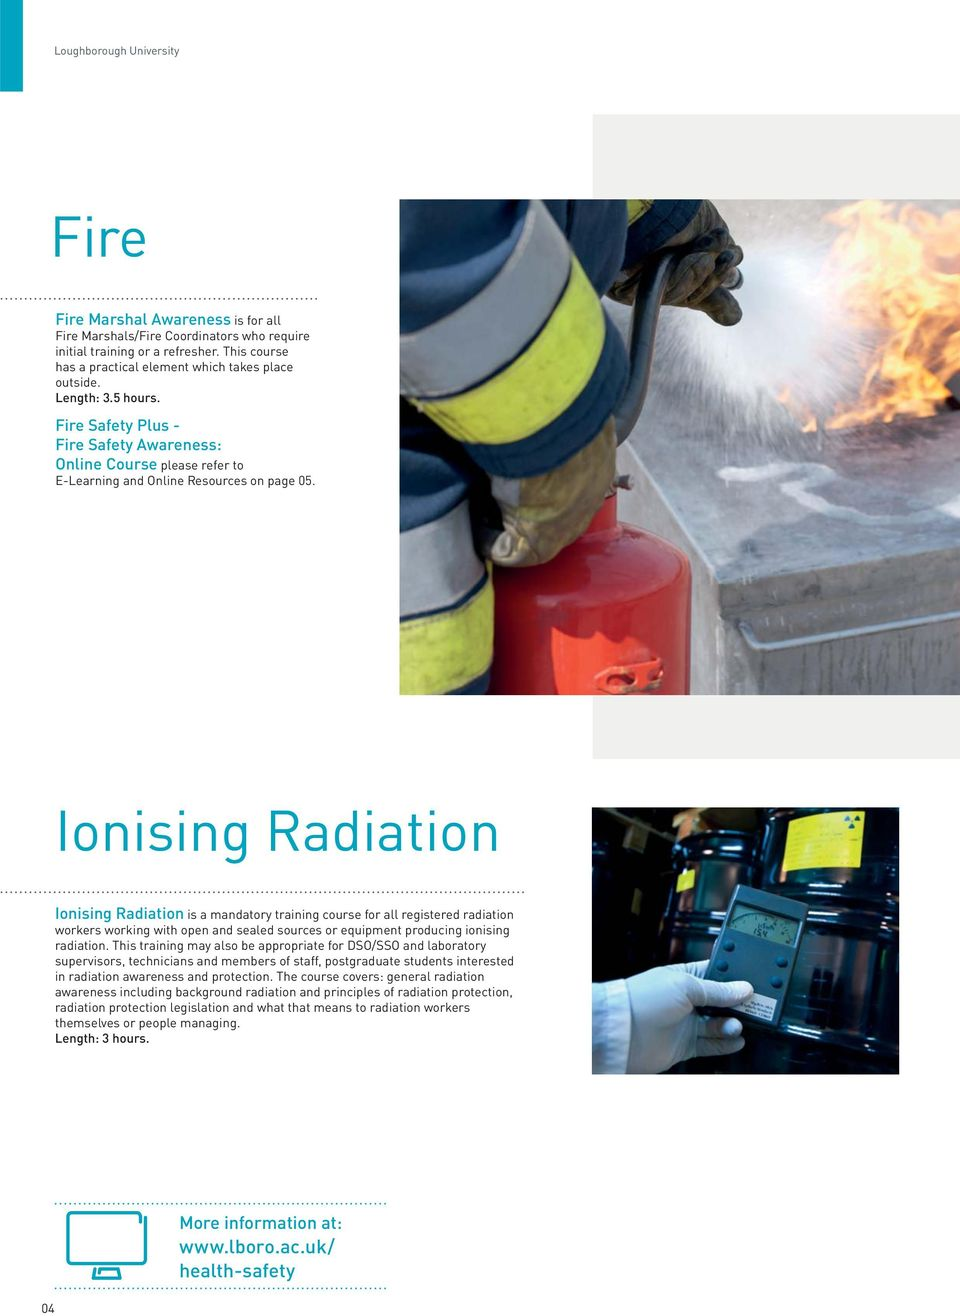 Ionising Radiation Ionising Radiation is a mandatory training course for all registered radiation workers working with open and sealed sources or equipment producing ionising radiation.